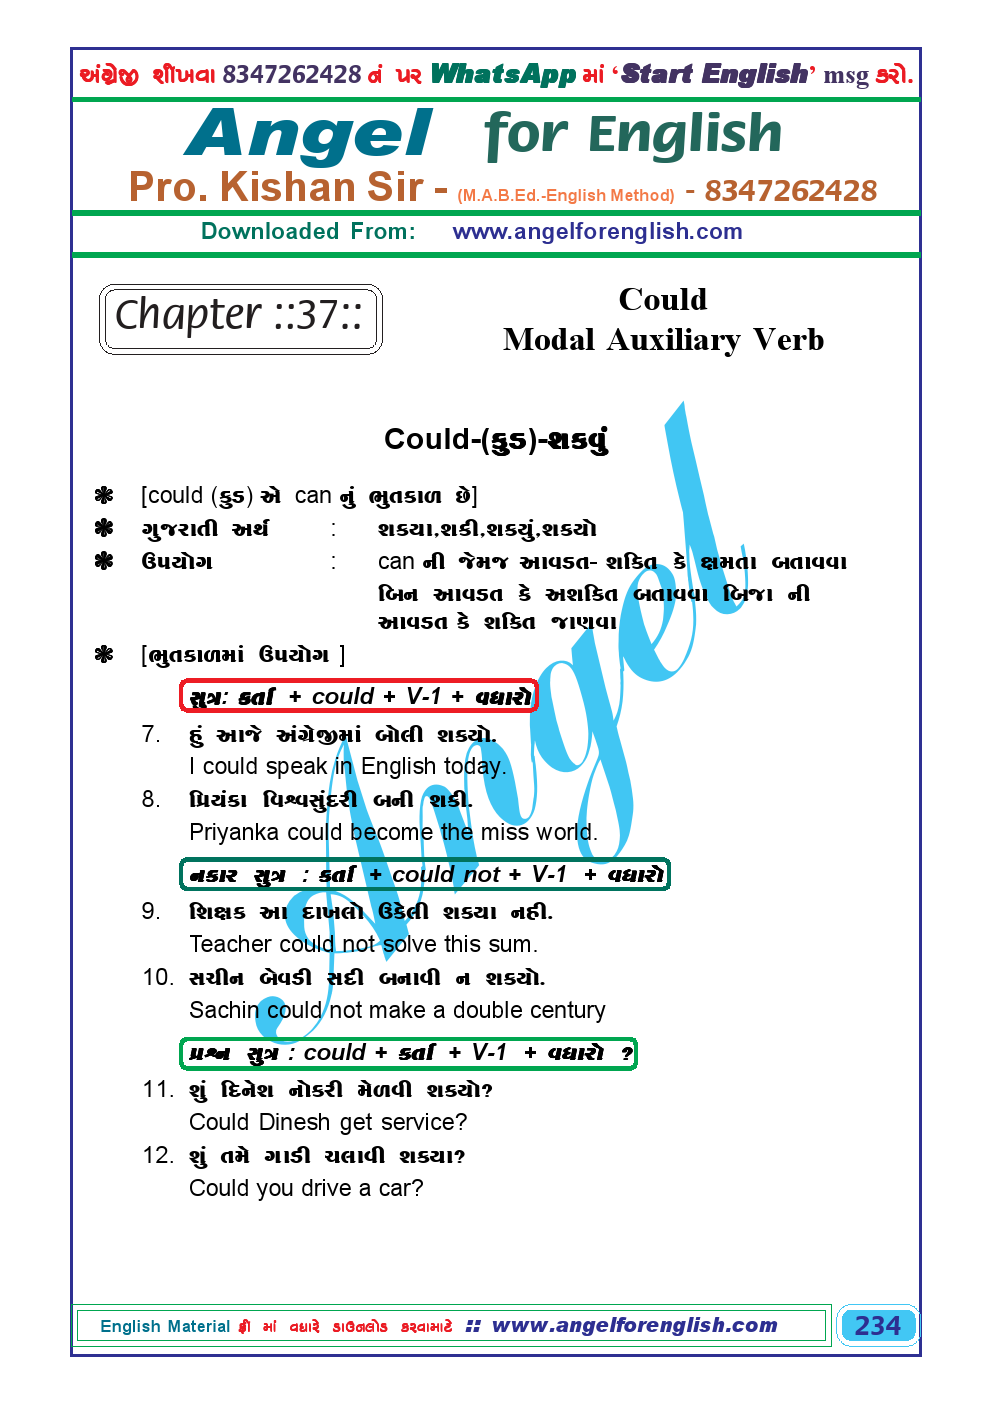 verb gujarati to english